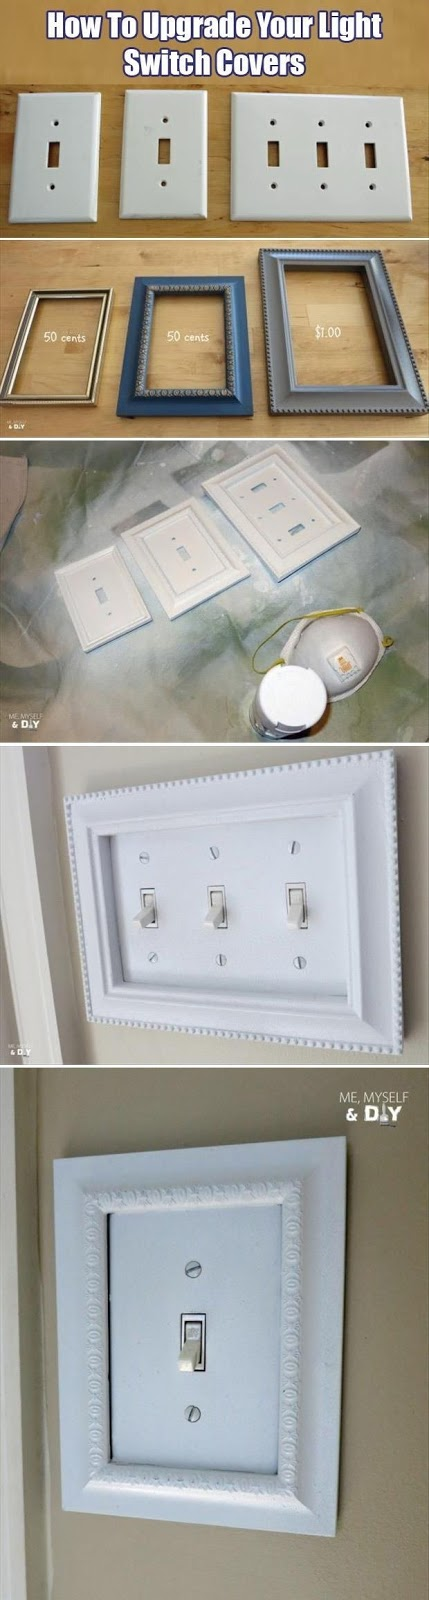 Decorate your light switch